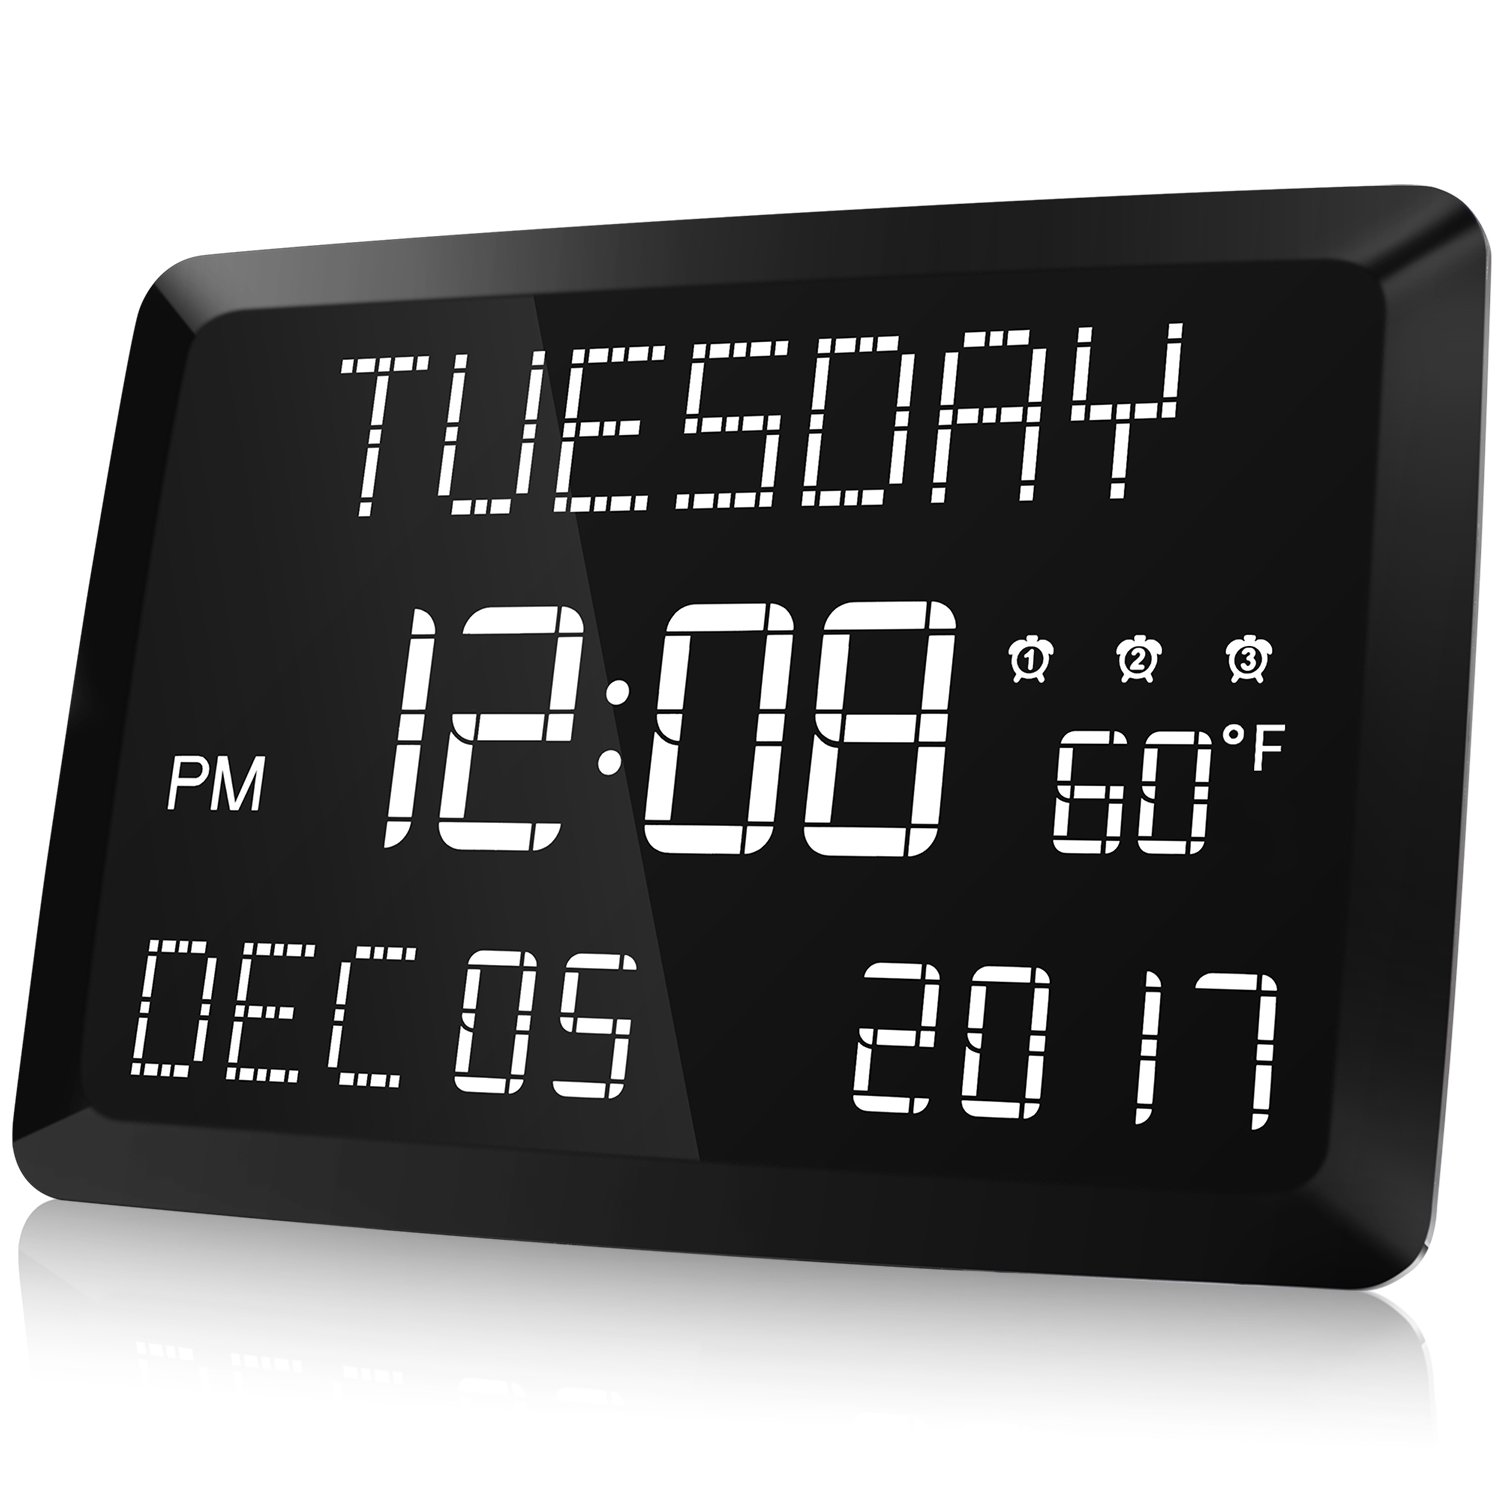 """Digital Alarm Day Clock - Raynic 11.5"""" Large Display LED Calendar clock Dimmable Wall Desk Clock with Indoor Temperature, 12/24 Hour, DST time, 3 Alarms for Elderly, Memory Loss, Impaired Vision, Home"""